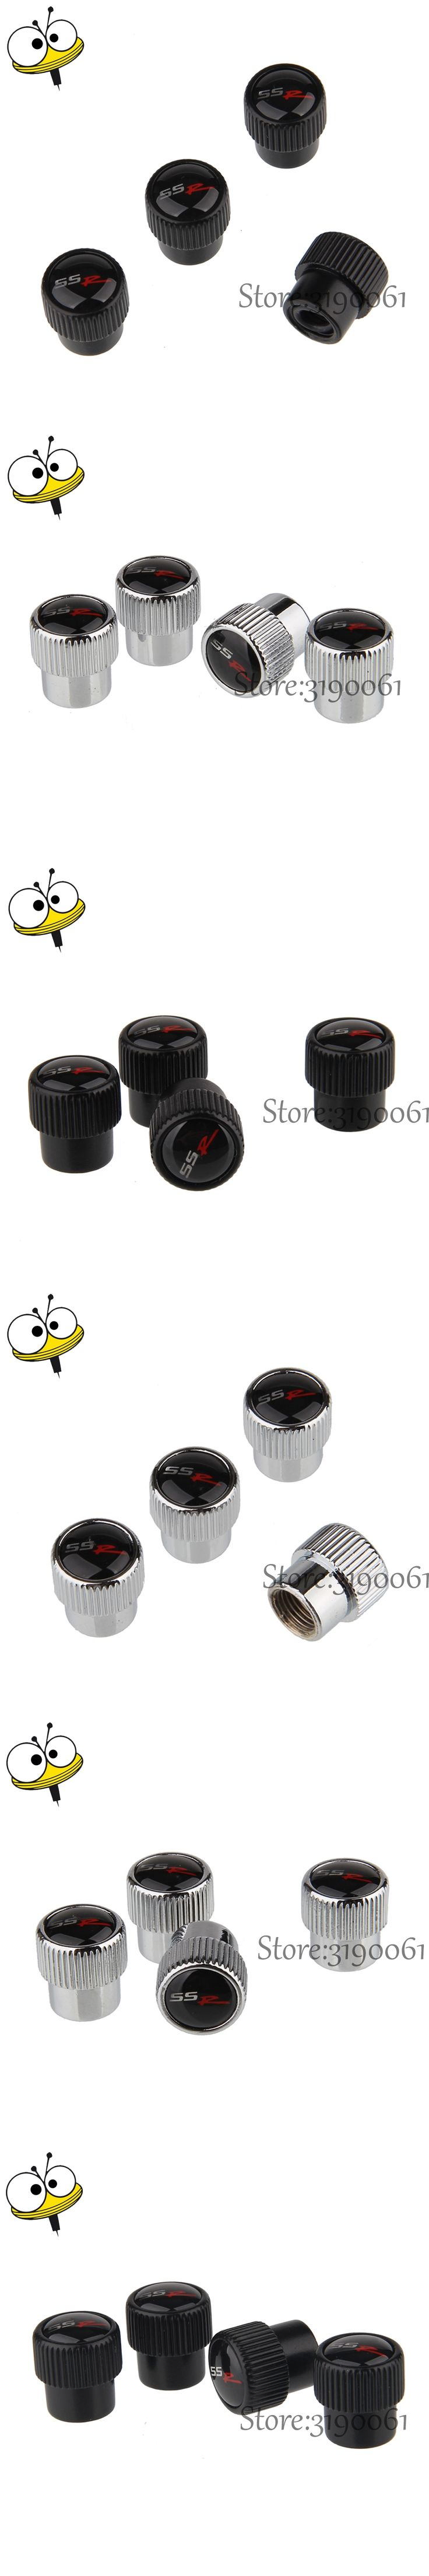 Metal Tire Valve Stems Caps Car Accessories For SSR Logo For Chevrolet Cruze Silverado Captiva Spark Orlando Aveo Malibu Epica